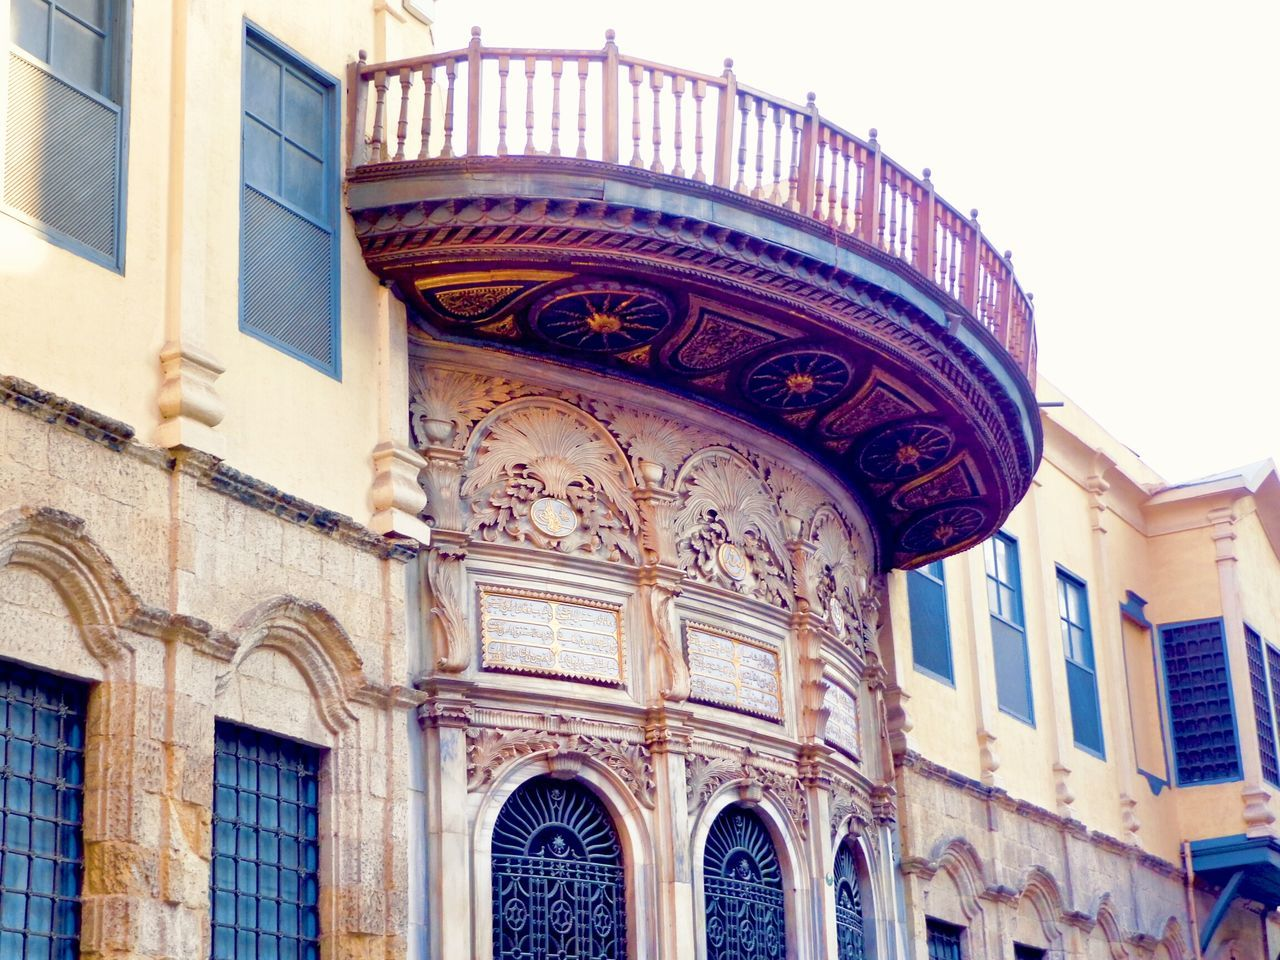 Sunlight Fatimid Cairo Al-moez Street Islamic Art Charm Gold Colored Building Exterior Travel Destinations Full Length Close-up History Islamic Cairo City Built Structure Architecture Sky Islamic Architecture Historical Place